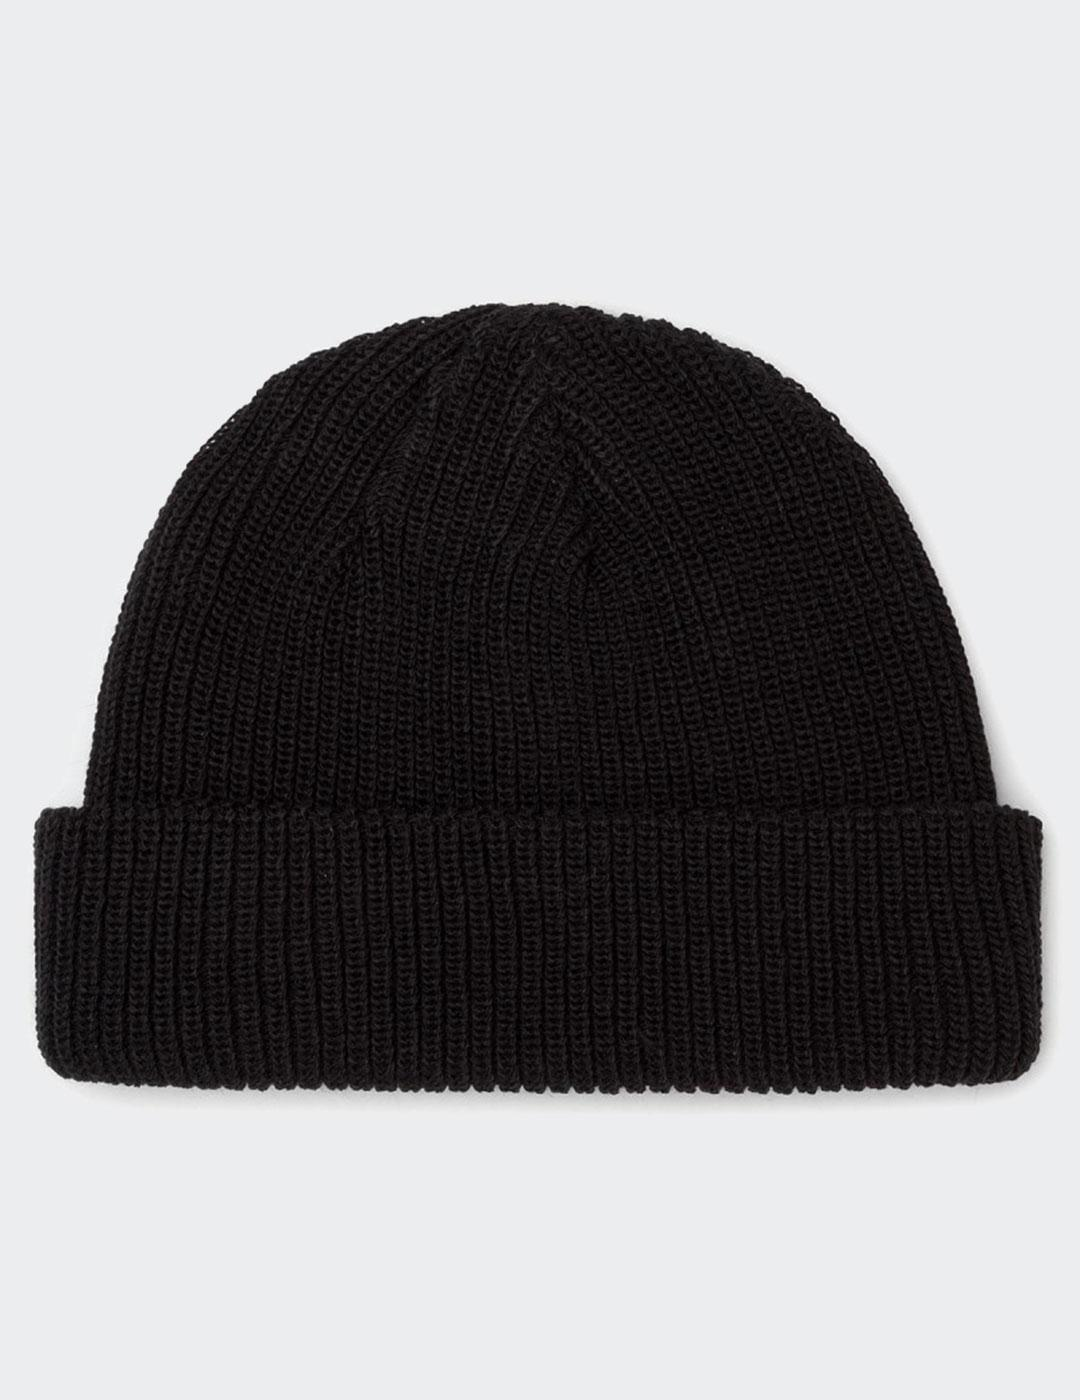 Gorro Adidas SHORTY - Negro